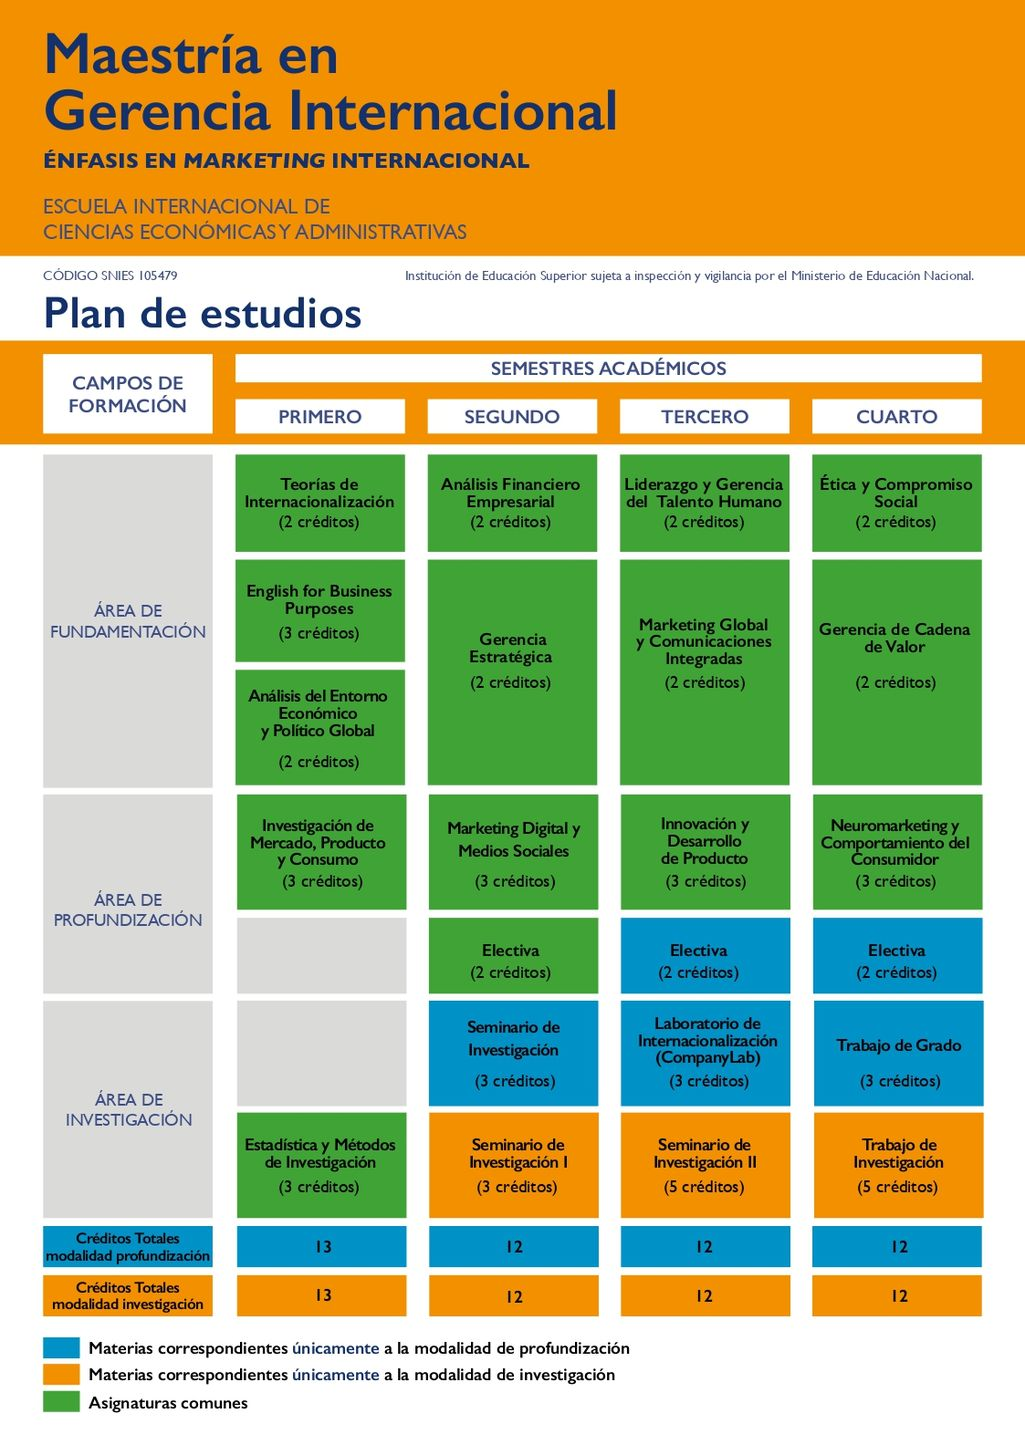 plan-de-studios-marketing-internacional-maestria-gerencia-internacional-unisabana